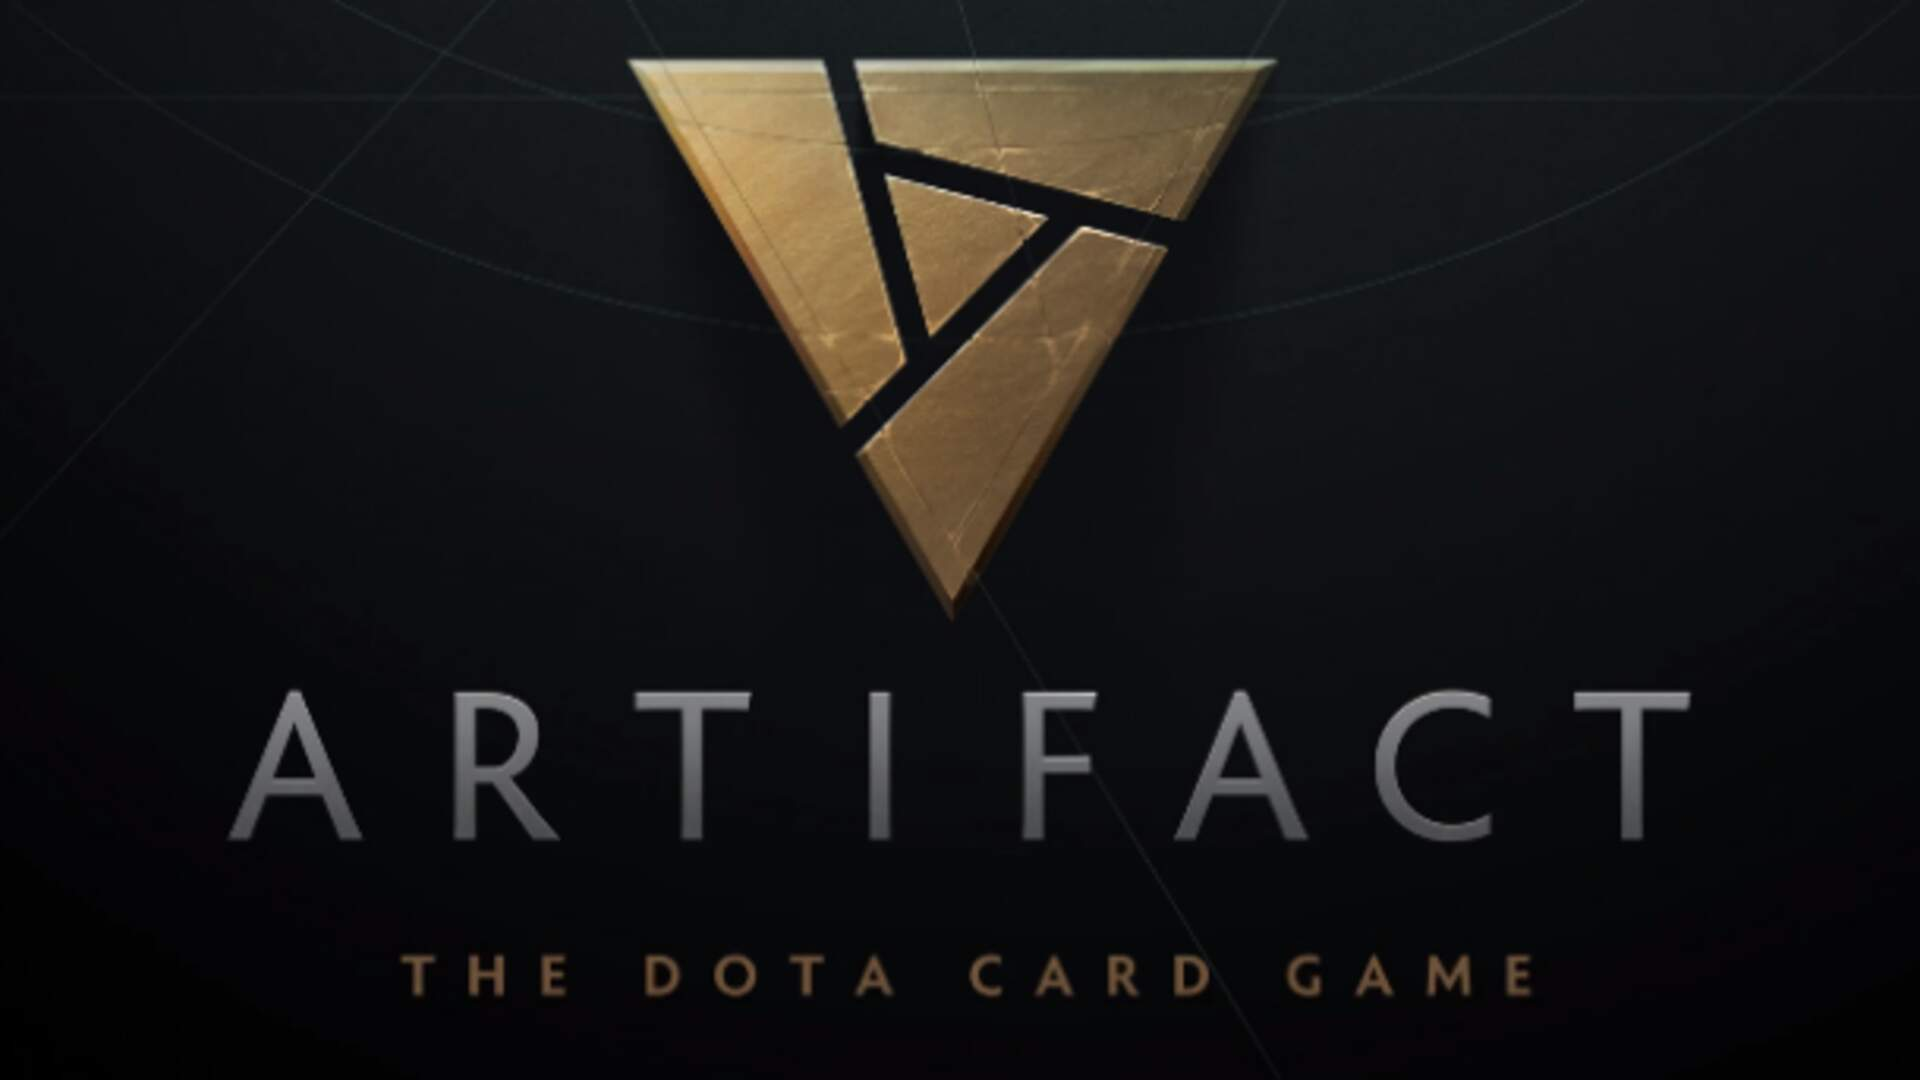 Here's When You Can Pre-Order Artifact, Valve's Dota 2 Card Game